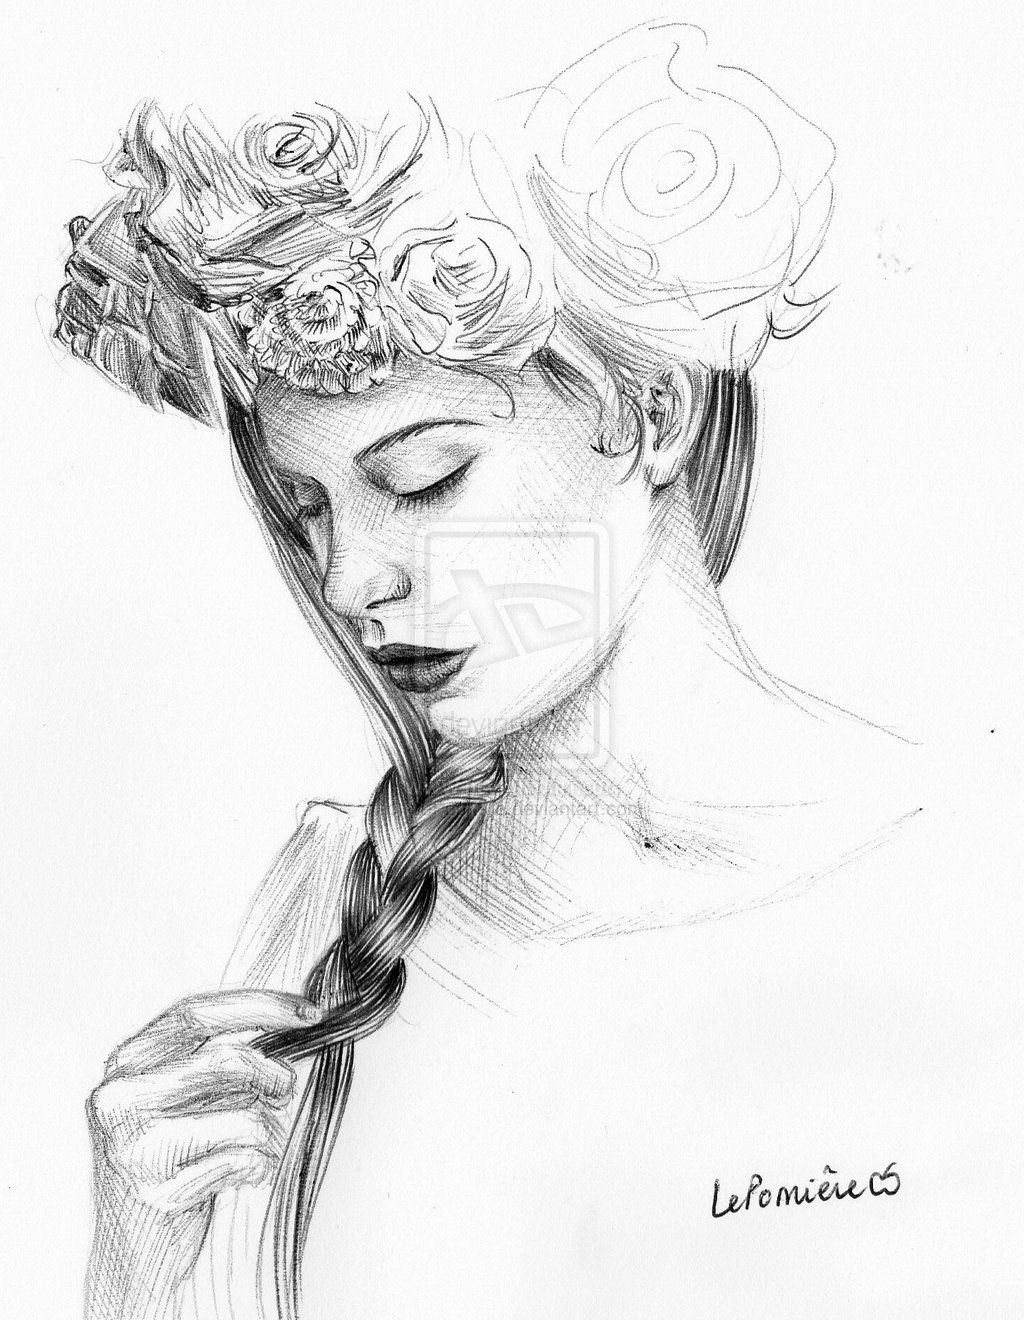 Flower crown drawing tumblr hd images 3 hd wallpapers girls flower crown drawing tumblr hd images 3 hd wallpapers izmirmasajfo